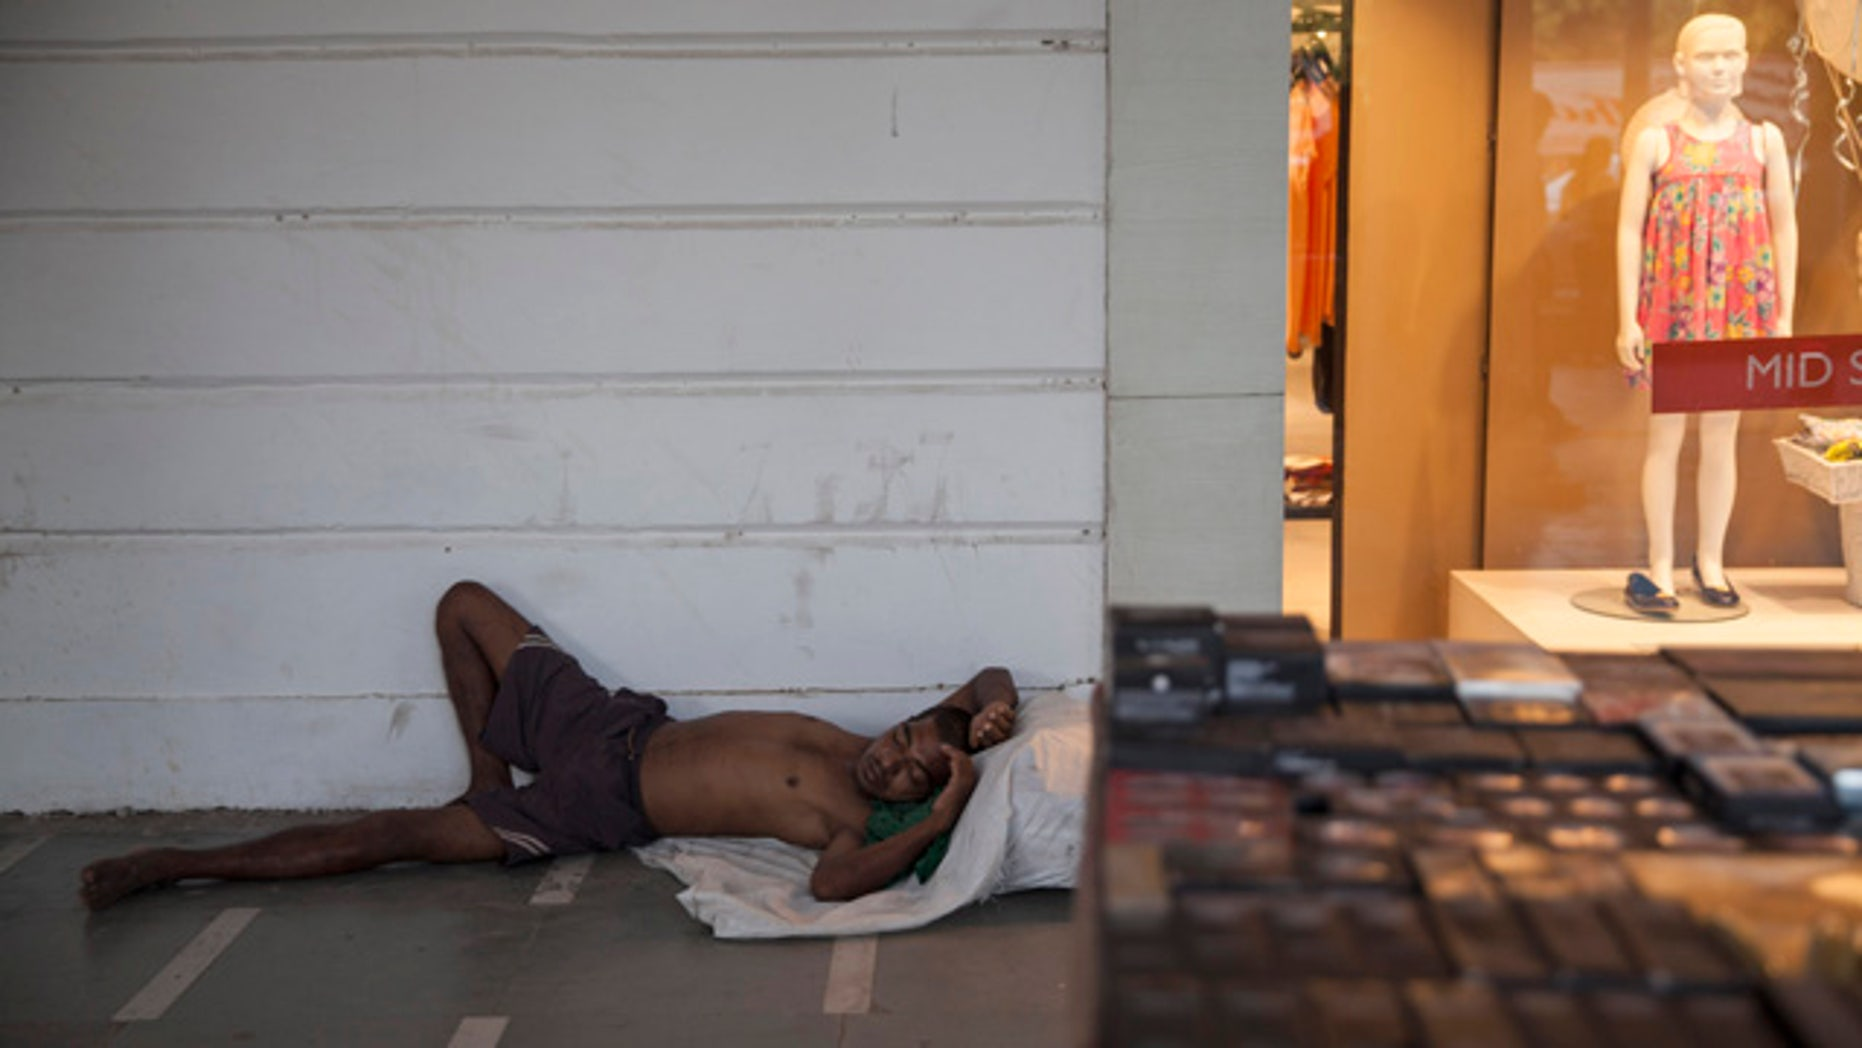 May 27, 2015: An Indian homeless man sleeps on a pavement in a market area on a hot summer day in New Delhi. In southern India, hundreds of people have died since the middle of April as soaring summer temperatures scorch the country, officials said Tuesday. (AP Photo/Tsering Topgyal)